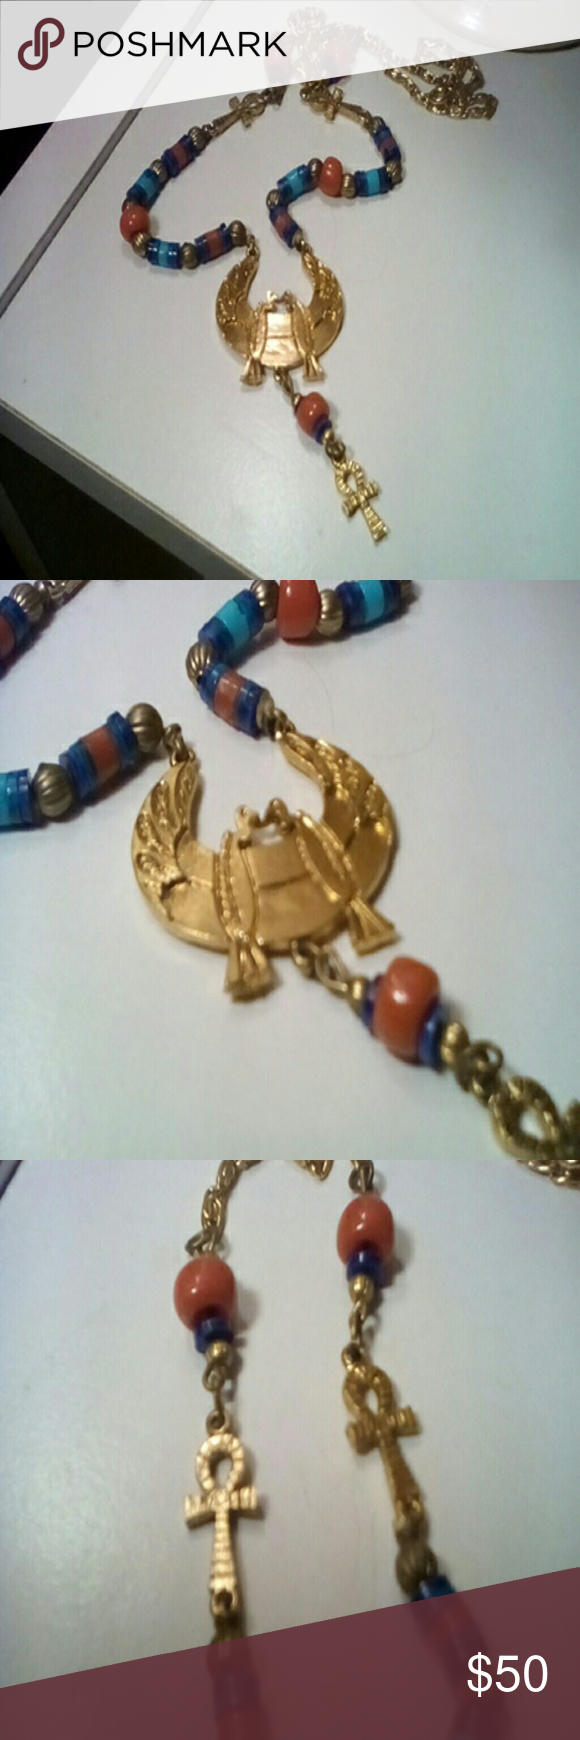 "Vintage ""ART"" Egyptian style necklace New condition, beautiful necklace.  20 inch necklace, pendant is 3 inches.  Thanks for stopping by! Jewelry Necklaces"